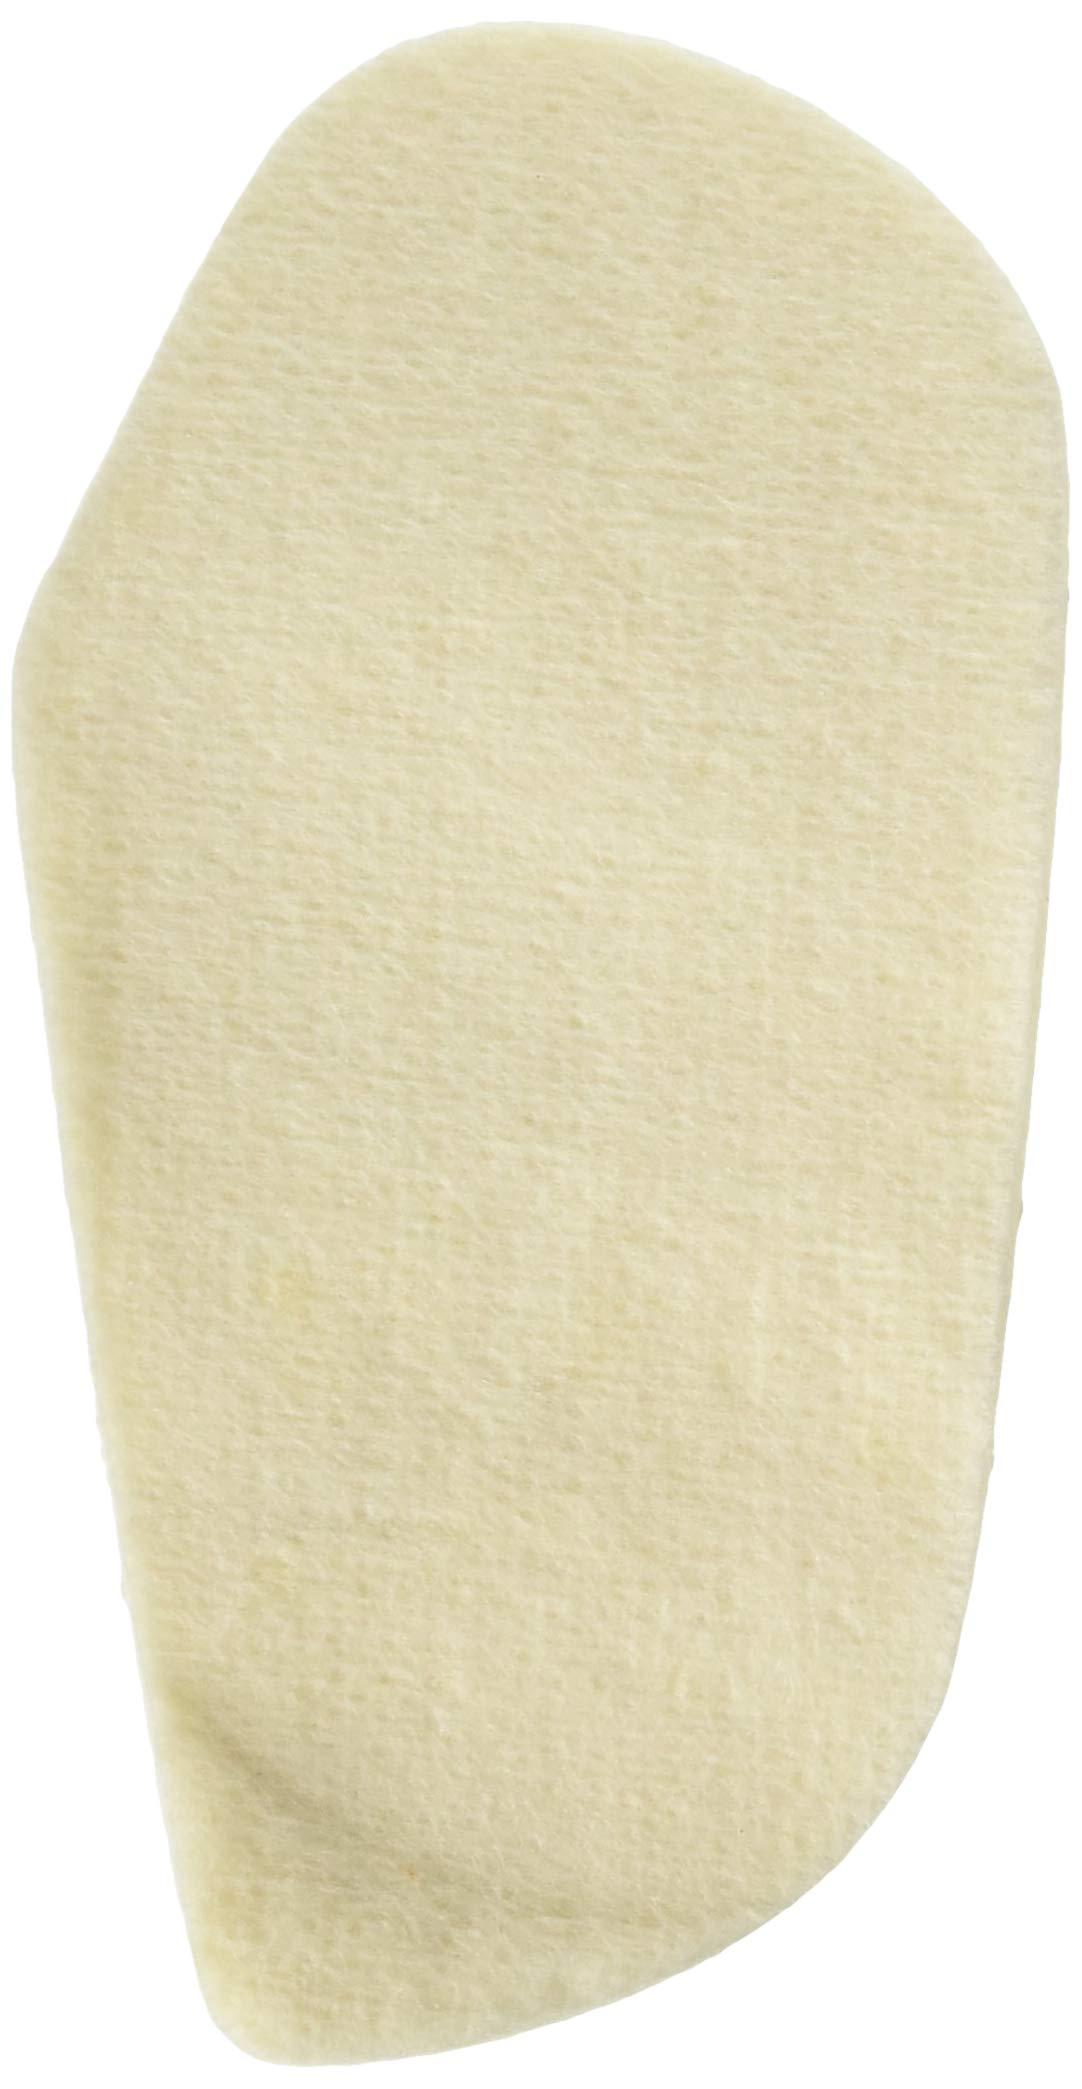 Steins 1/4 Inch No.17 Adhesive Felt Pinch Pads Left, 100 Count